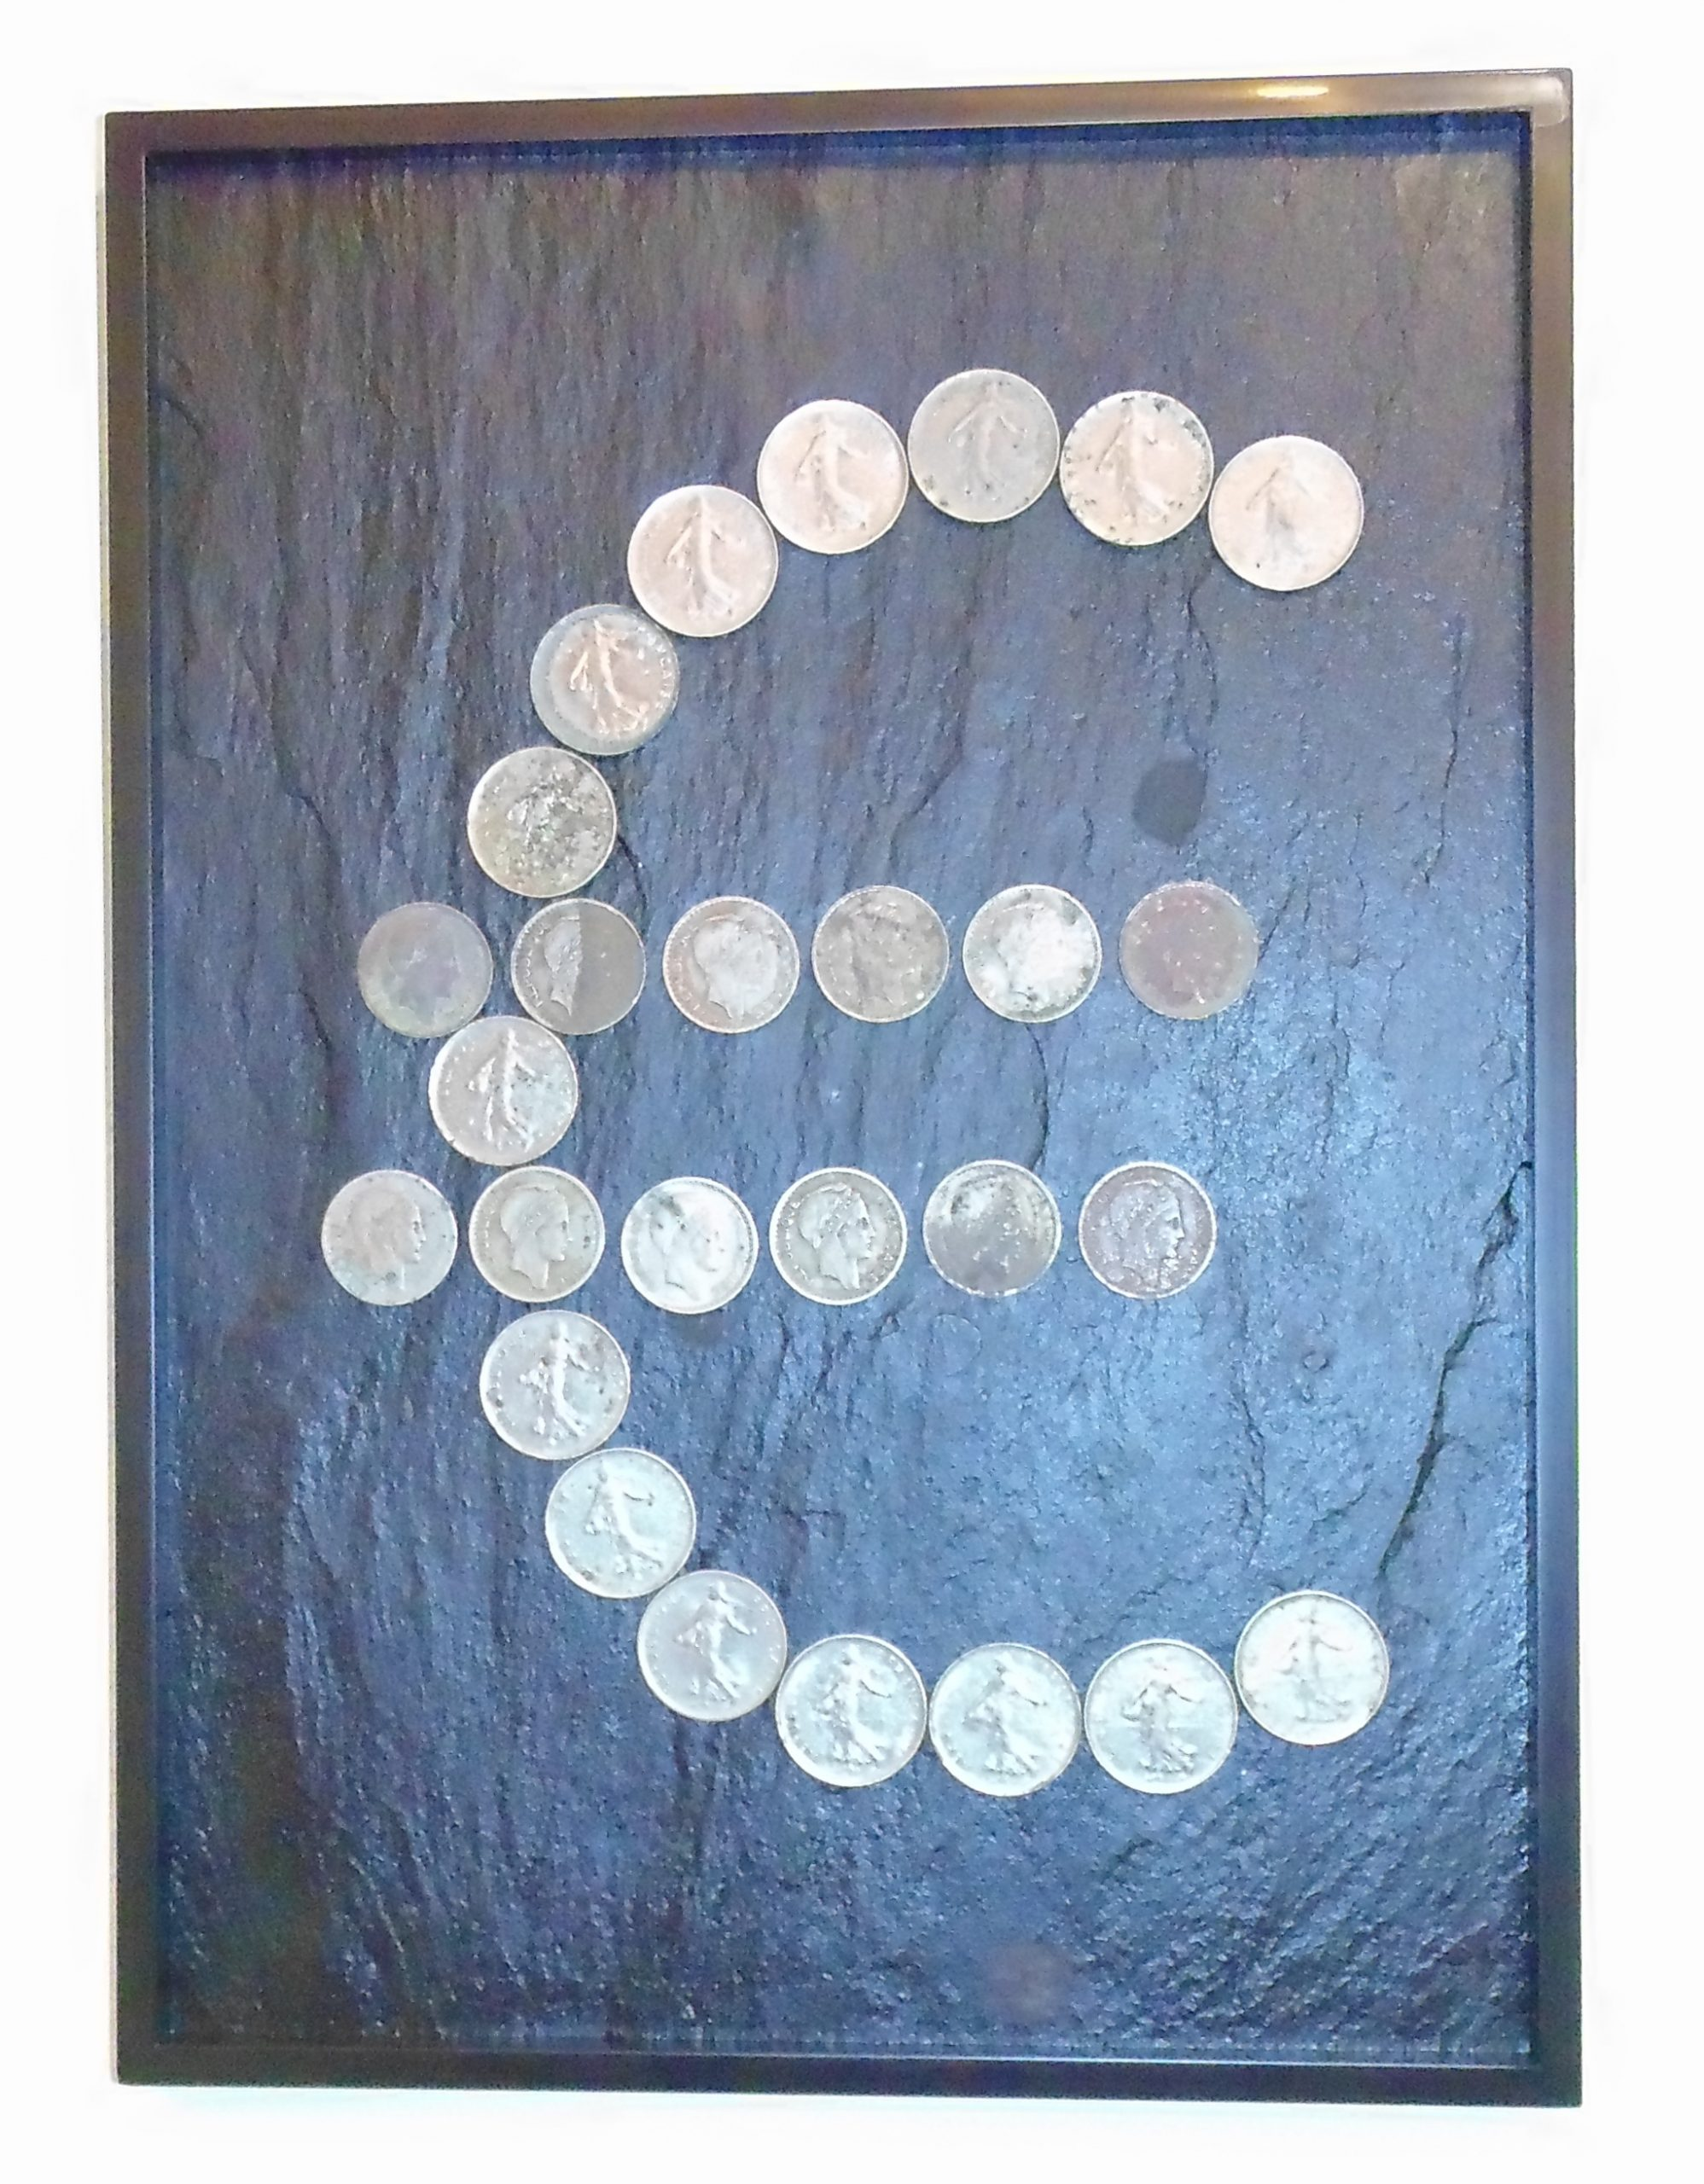 File:euro Symbol - Minimalism Art With Counterfeit Money avec Fausses Pieces Euros